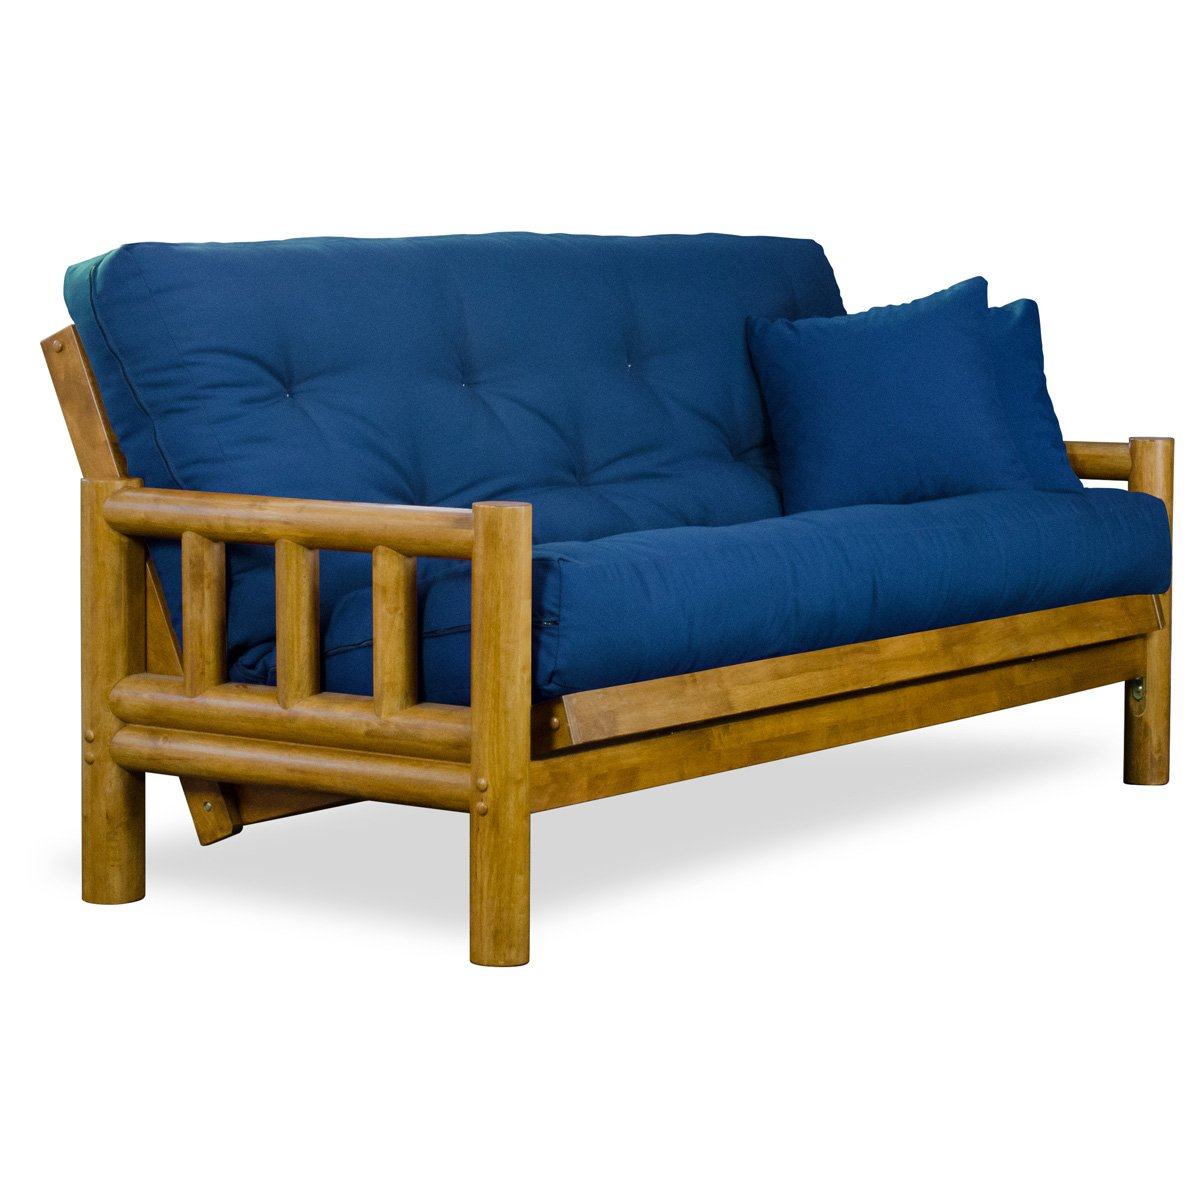 Rustic Tahoe Log Queen Size Wood Futon Frame - Heritage Finish by Nirvana Futons